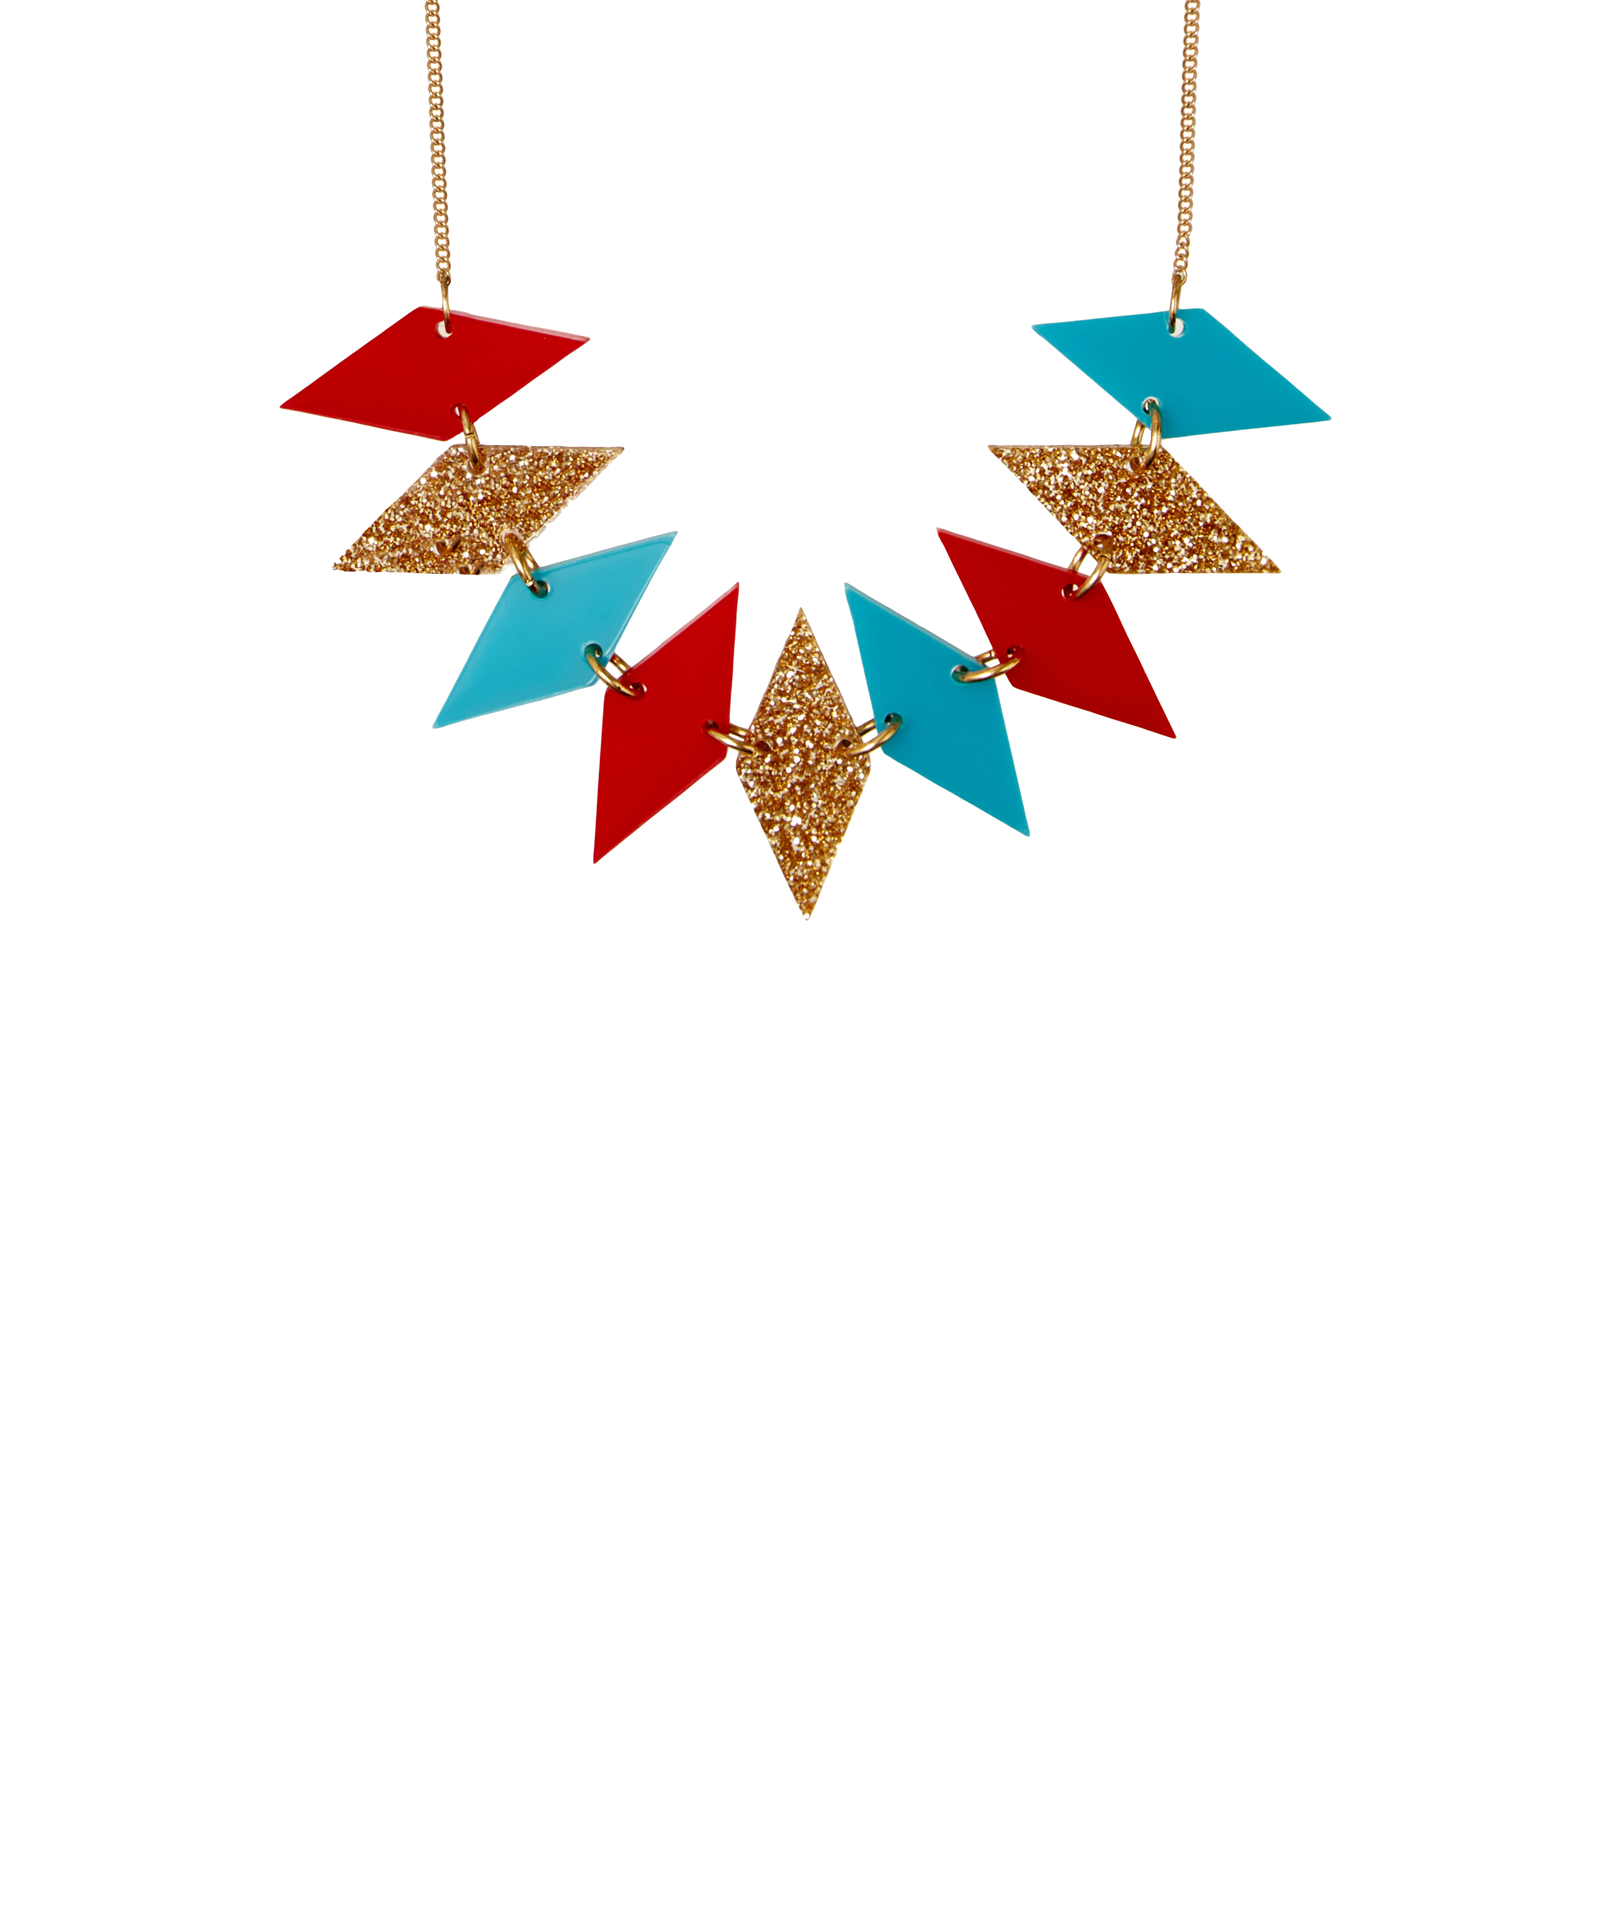 Harlequin Bunting Necklace. Brights - Add a flash of festive fun to your look with the Harlequin Bunting Necklace. Inspired by mid century Christmas decorations, diamonds are laser cut in bright red, turquoise and glitter gold acrylic and hand linked to a golden tone chain. Exclusive to Tatty Devine